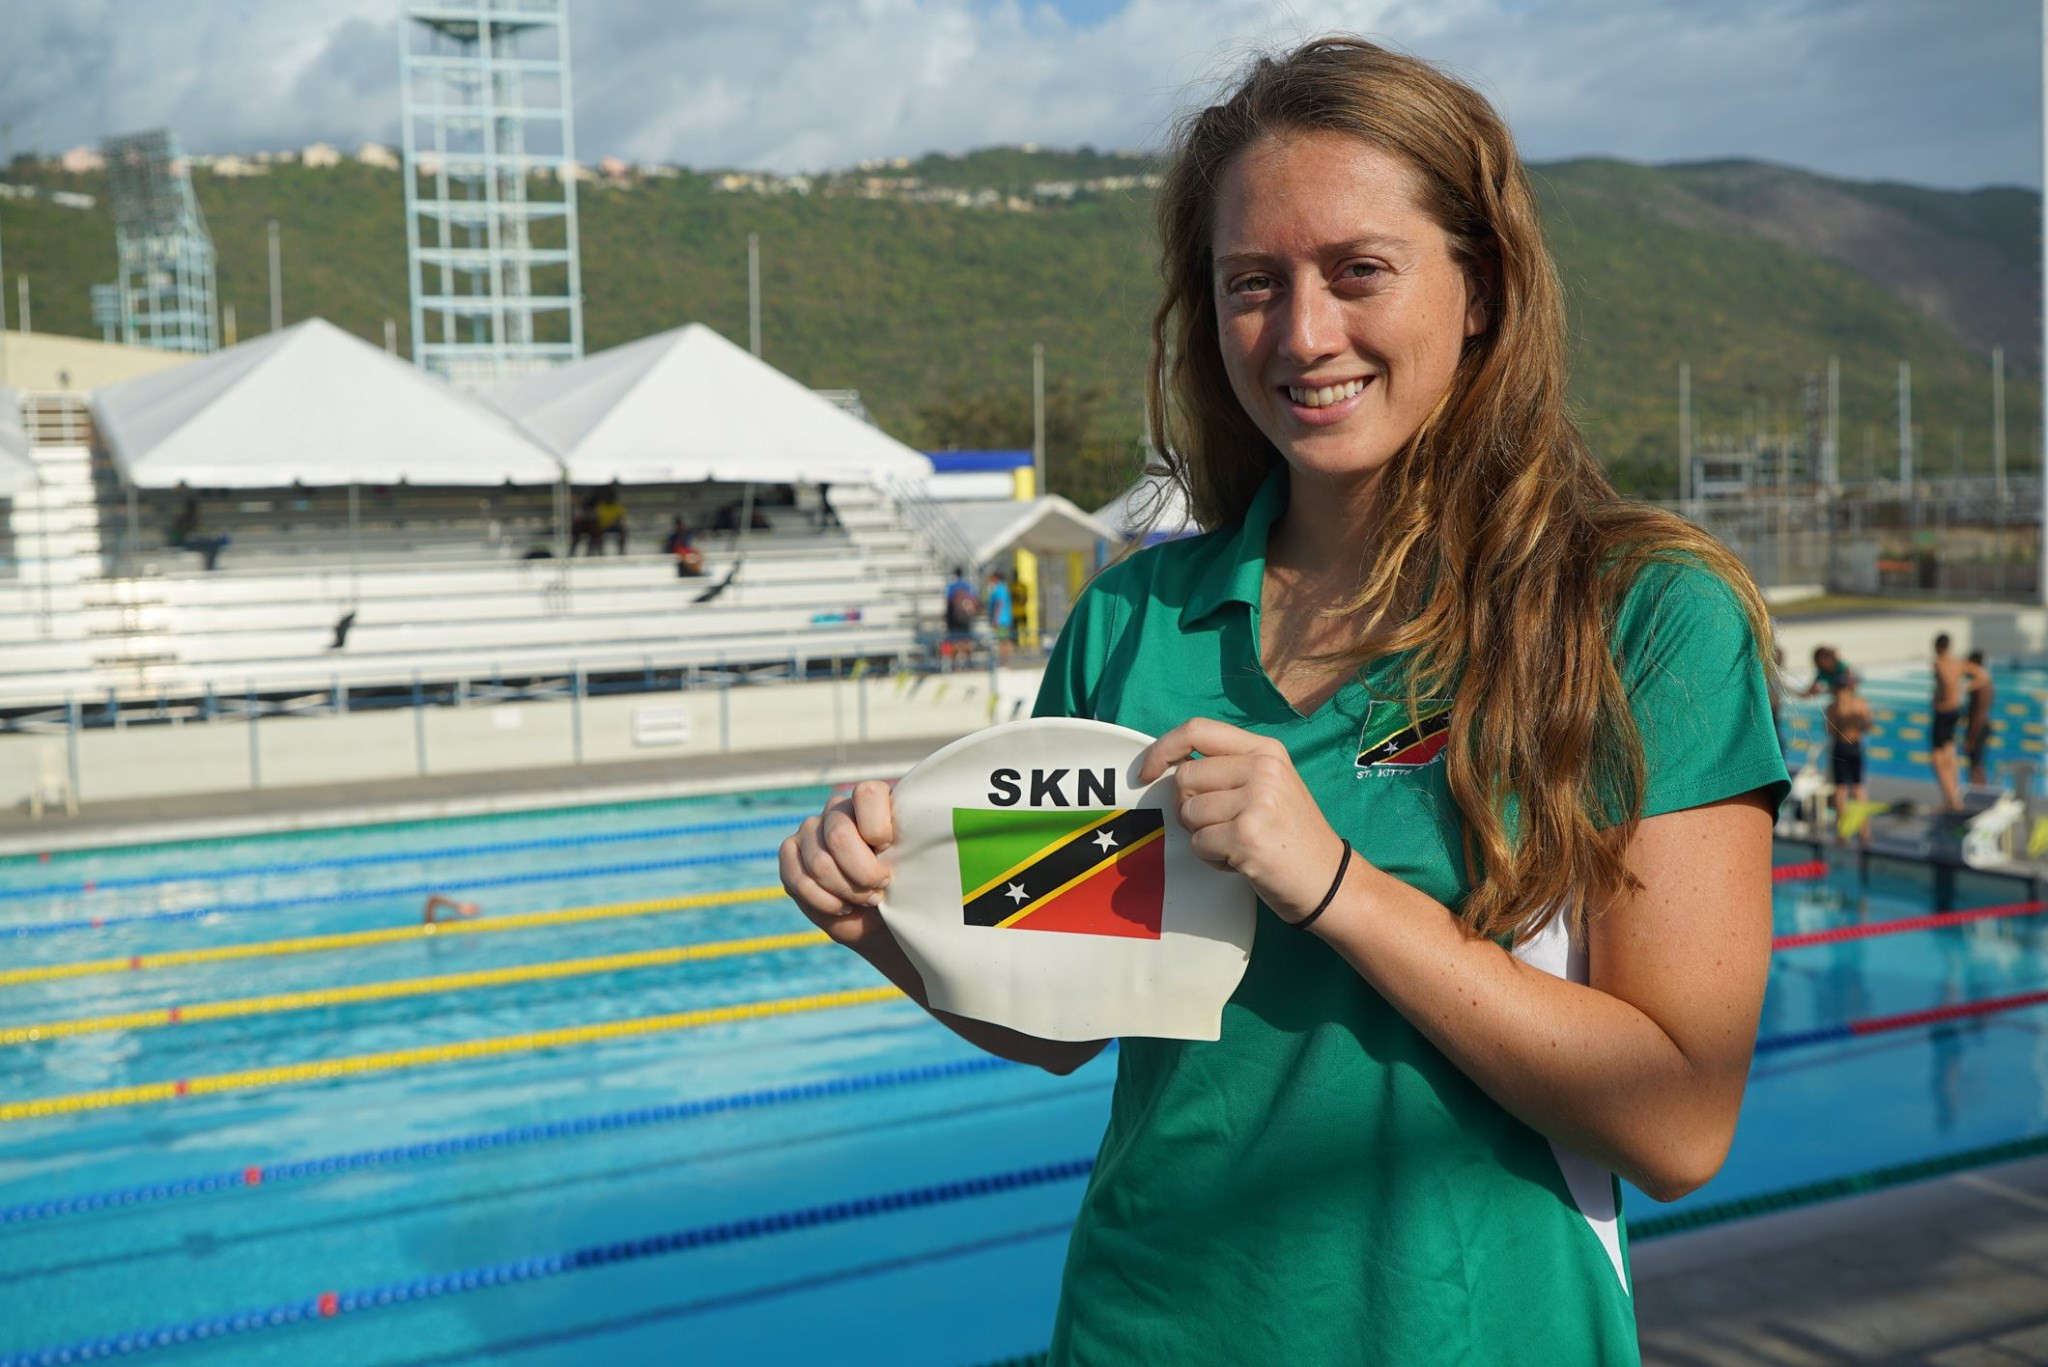 Saint Kitts and Nevis swimmer's Olympic bid fails after CAS Ad Hoc Division ruling